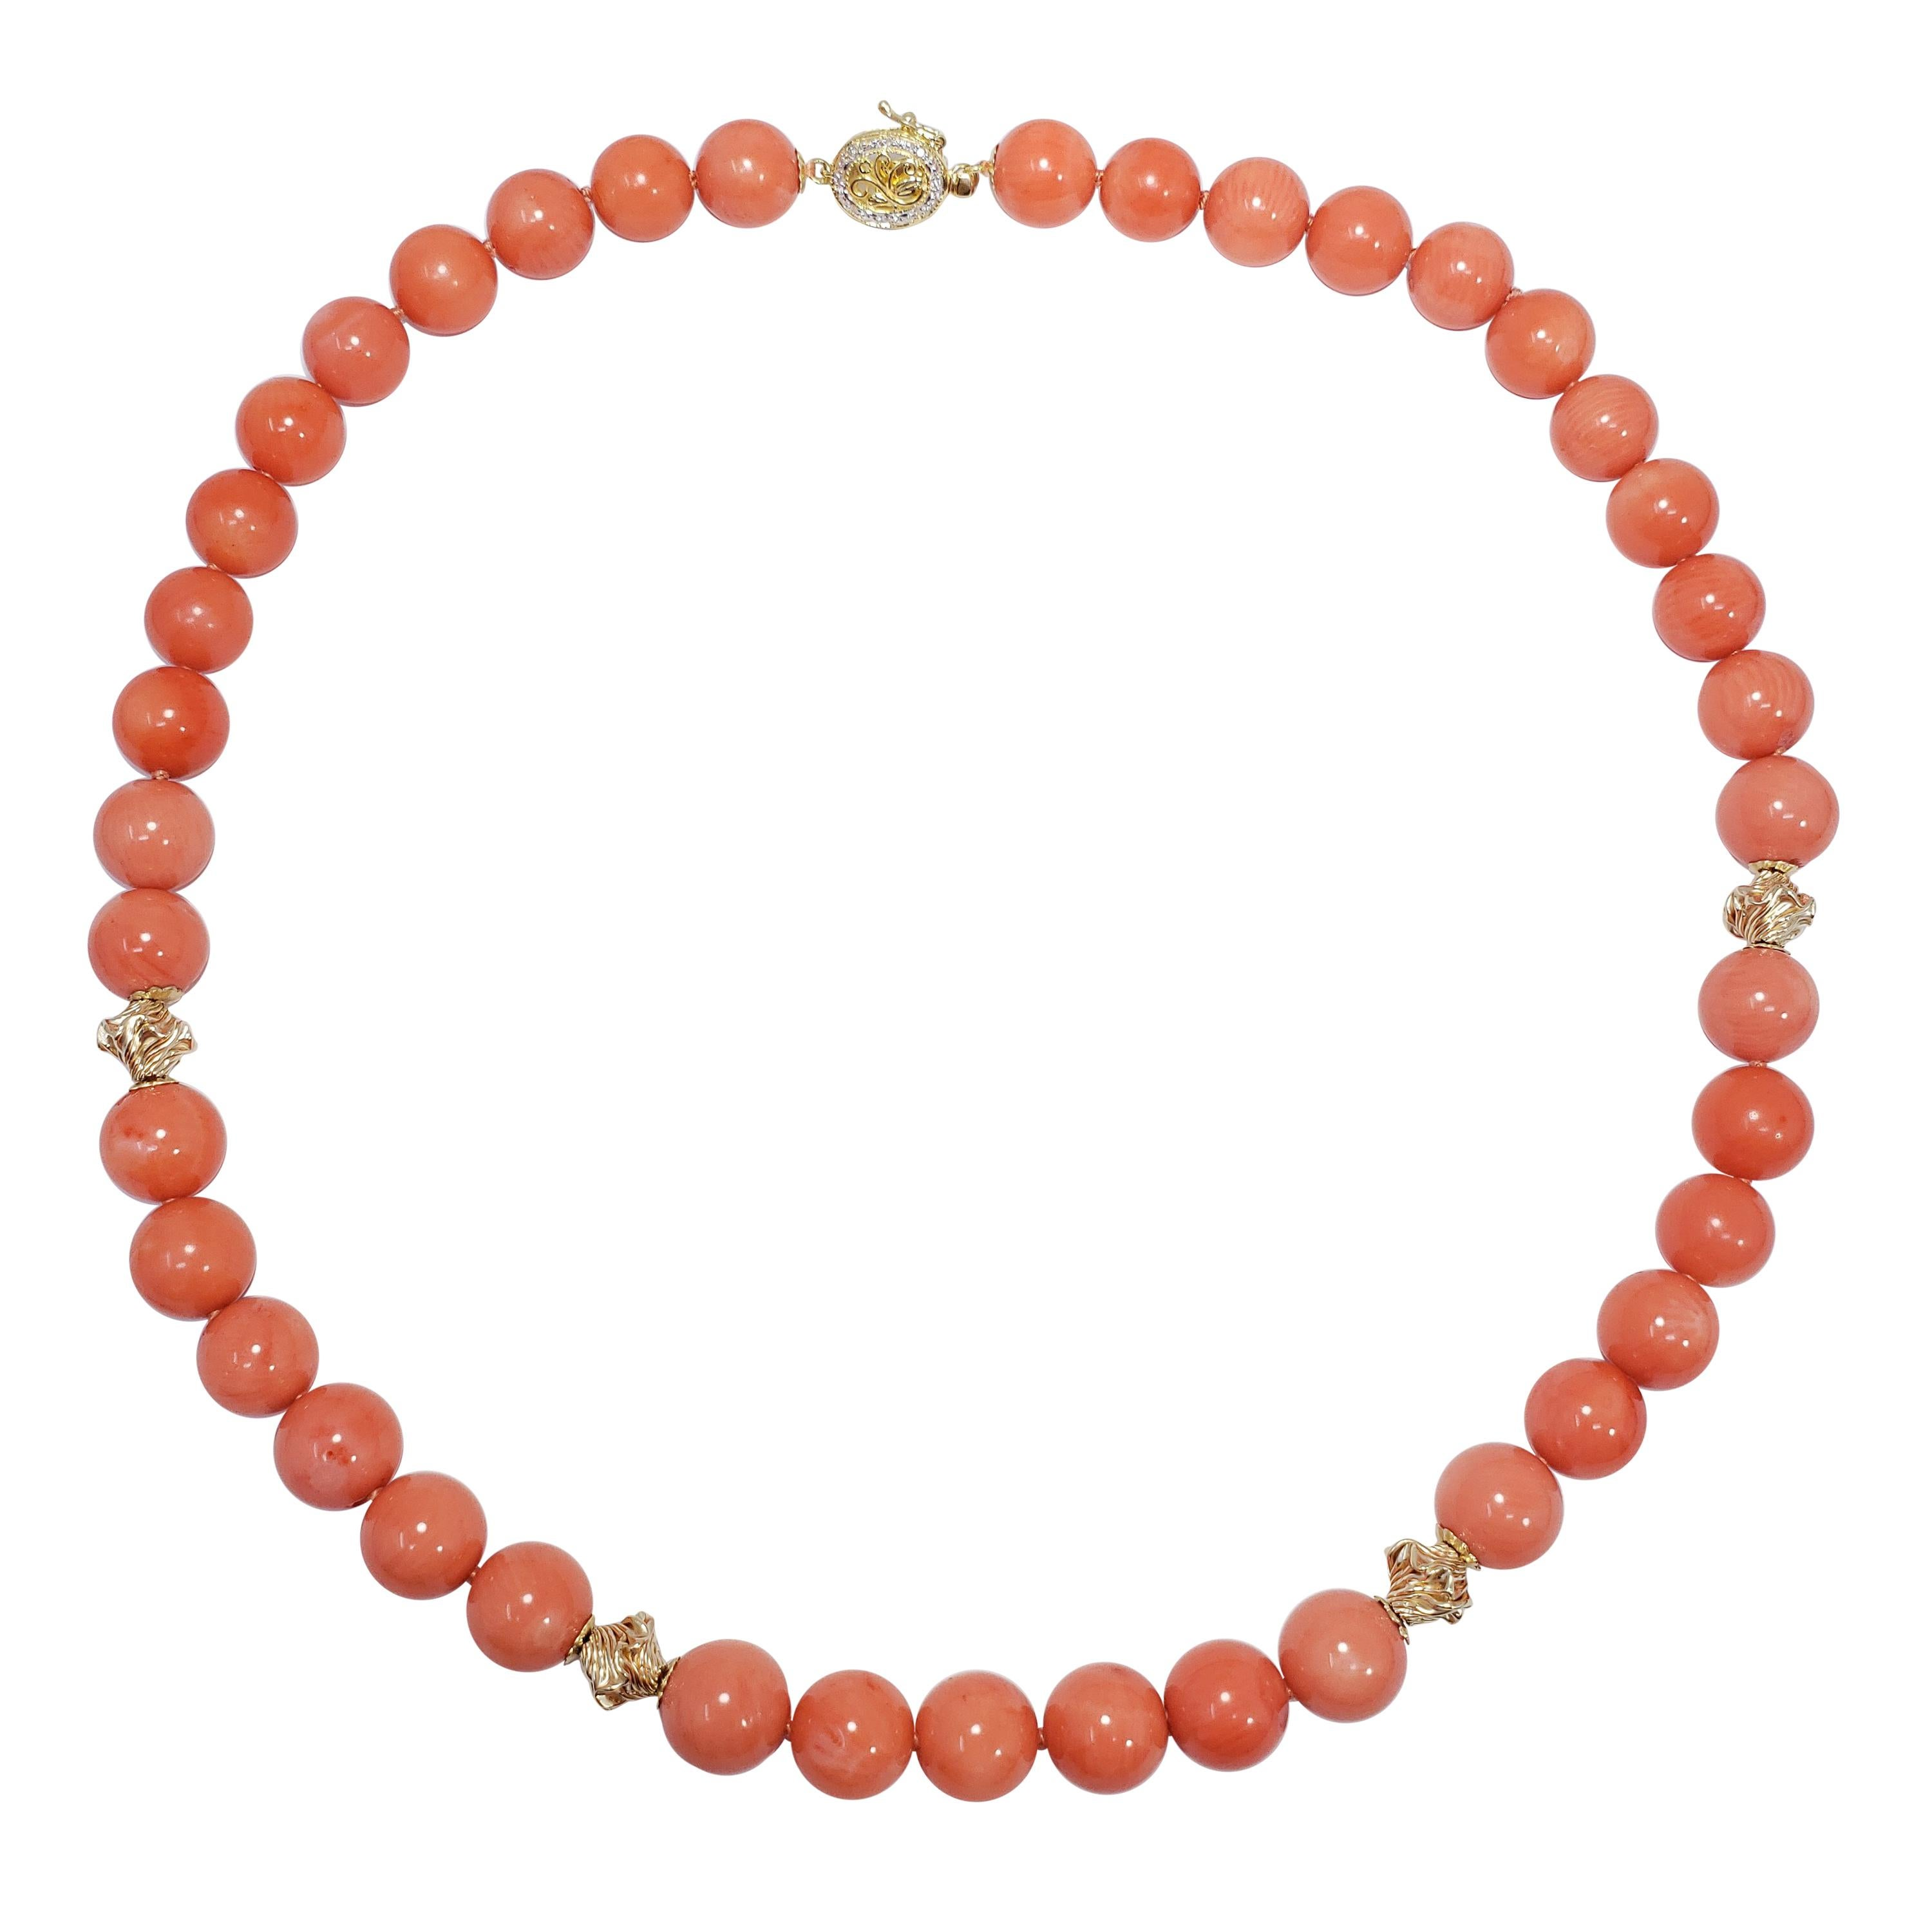 cf30a68e1208f Genuine South Sea Pearl Bead Knotted String Necklace with 14 Karat Yellow  Gold